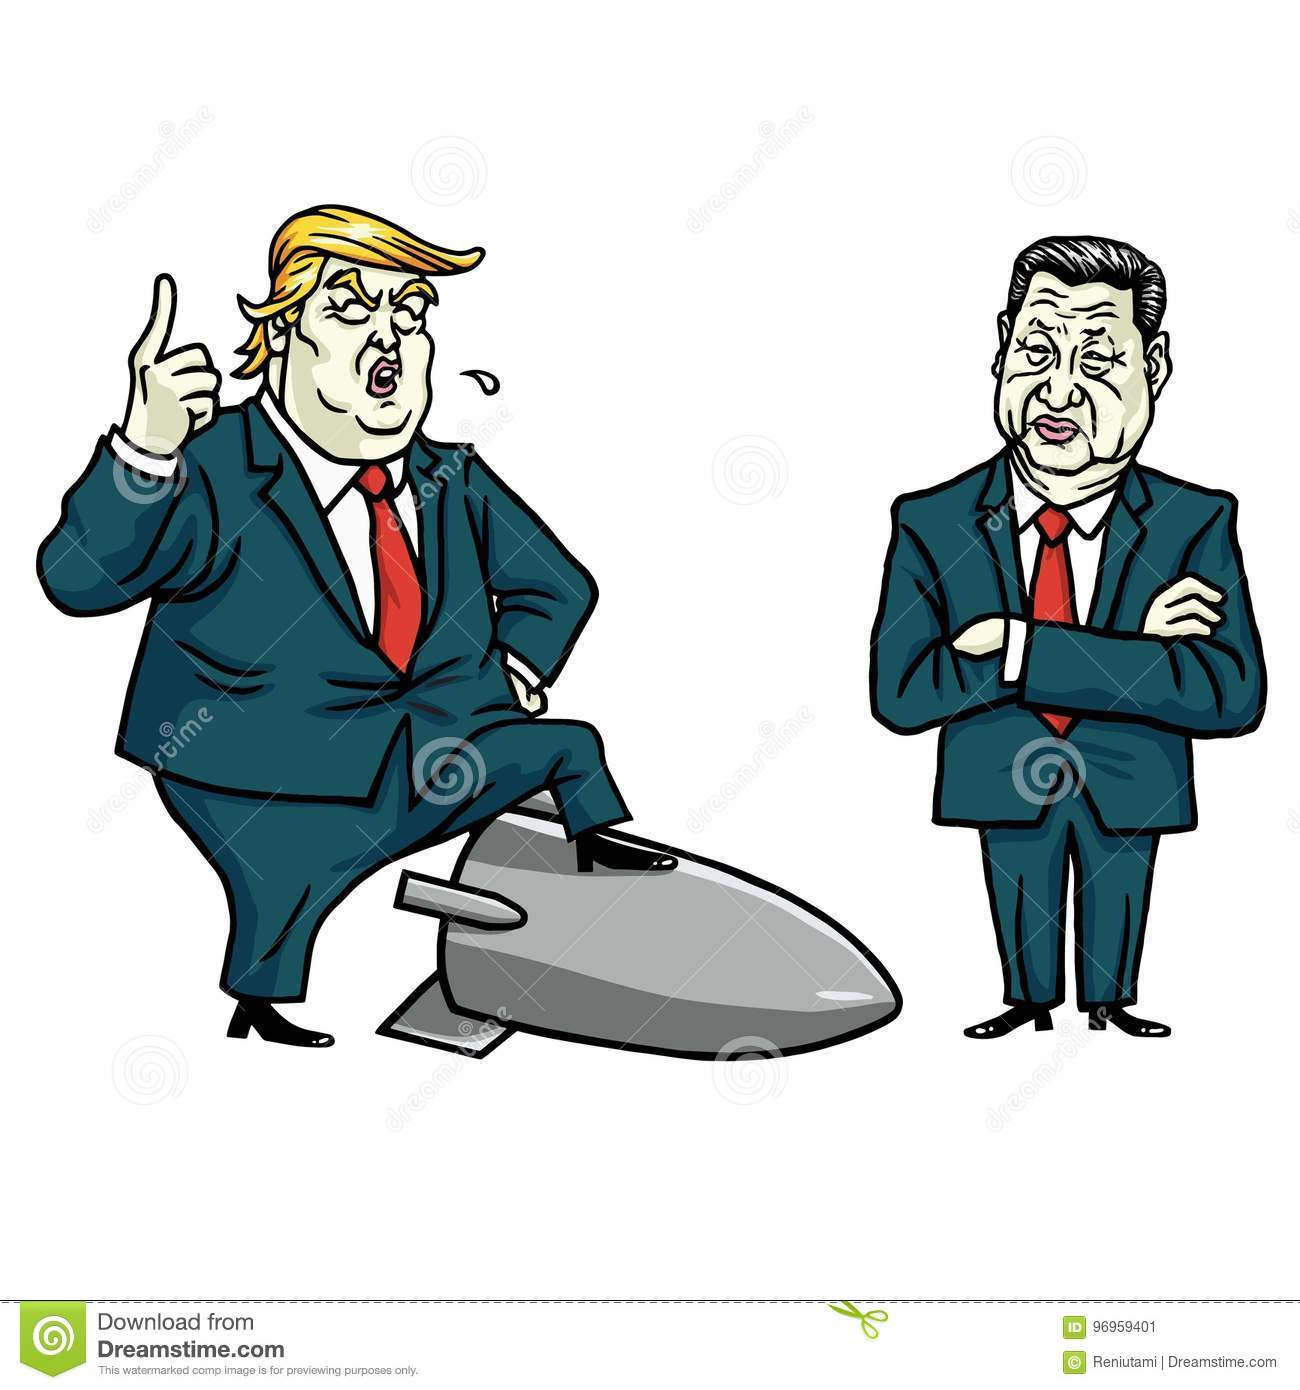 Donald Trump and Xi Jinping. Cartoon Vector Illustration. July 29, 2017